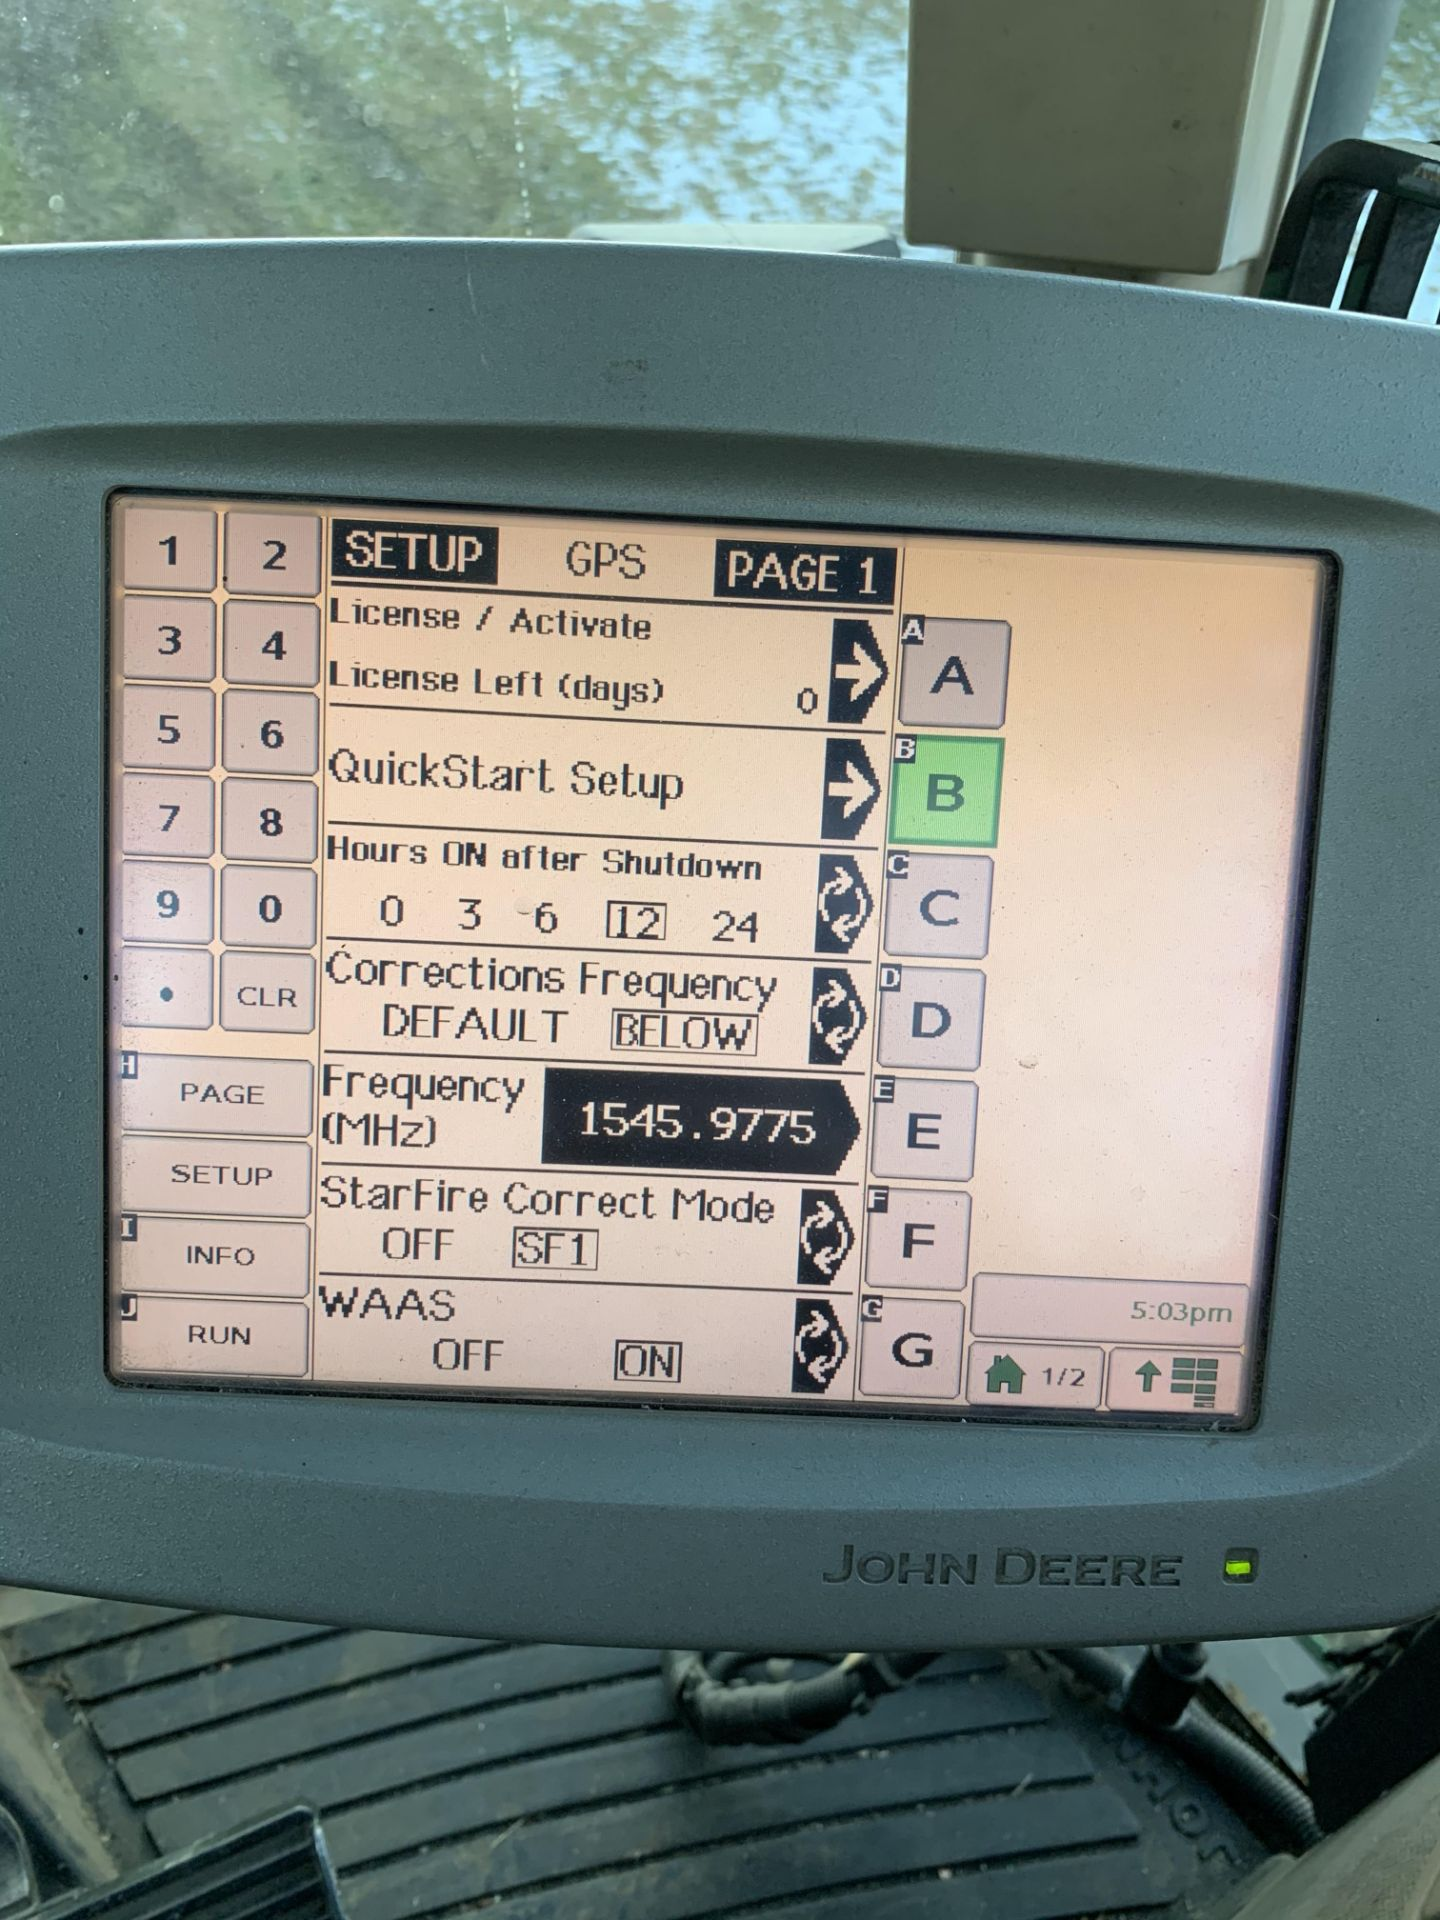 John Deere 2600 Monitor Console, Serial #PCGU26H211463. Auto Tract Activation - Image 6 of 6